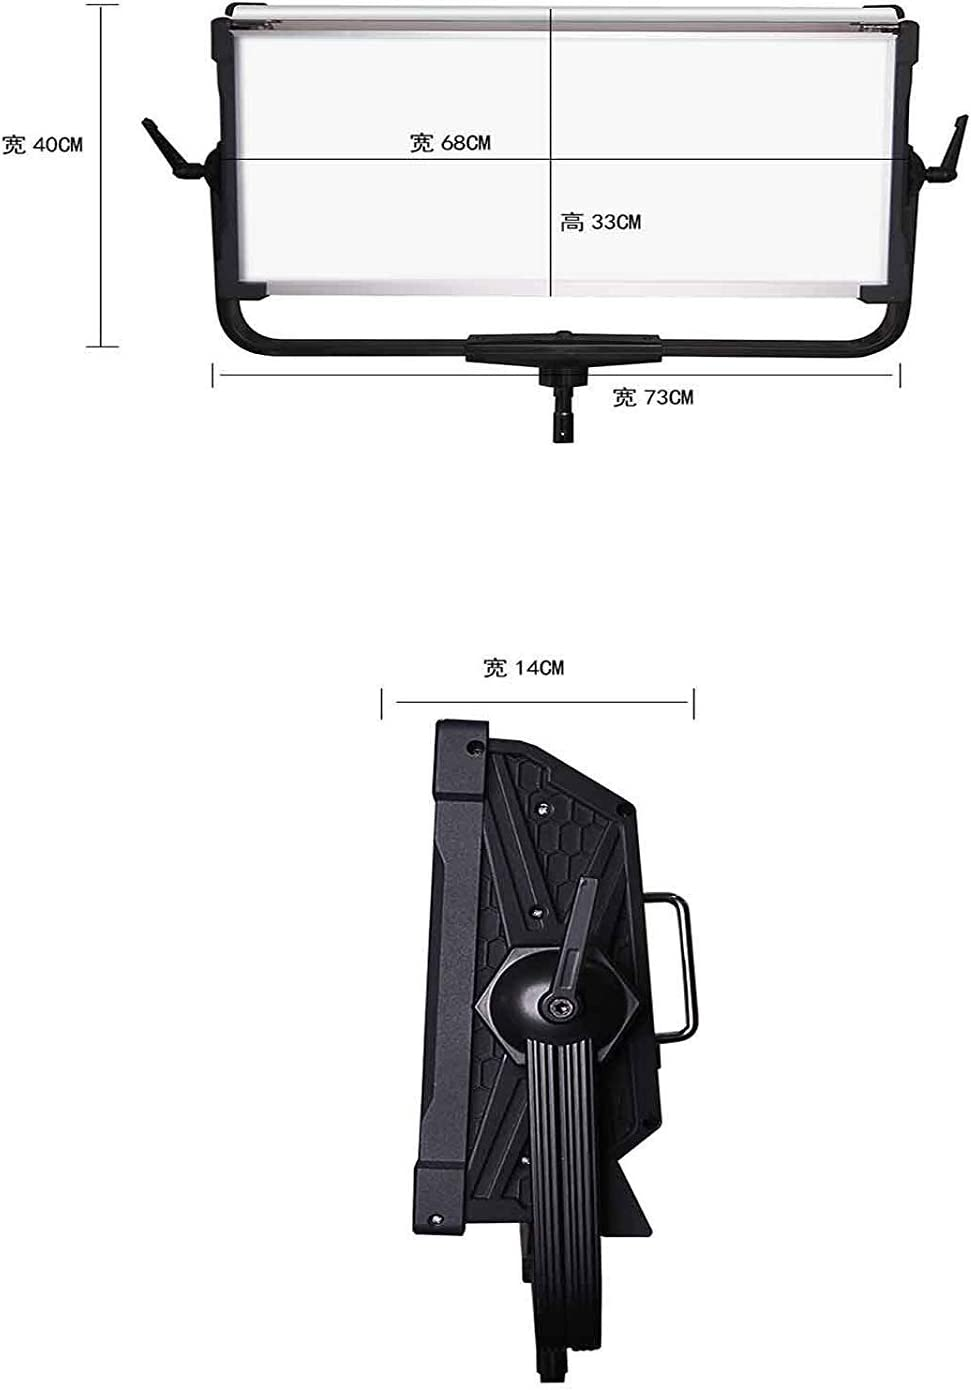 Yidoblo Softbox with 300W RGBW LED Panel Lamp APP Control Soft LED Lamp 12 Photography Lighting Effects Set for Studio Video Film Black LED kit